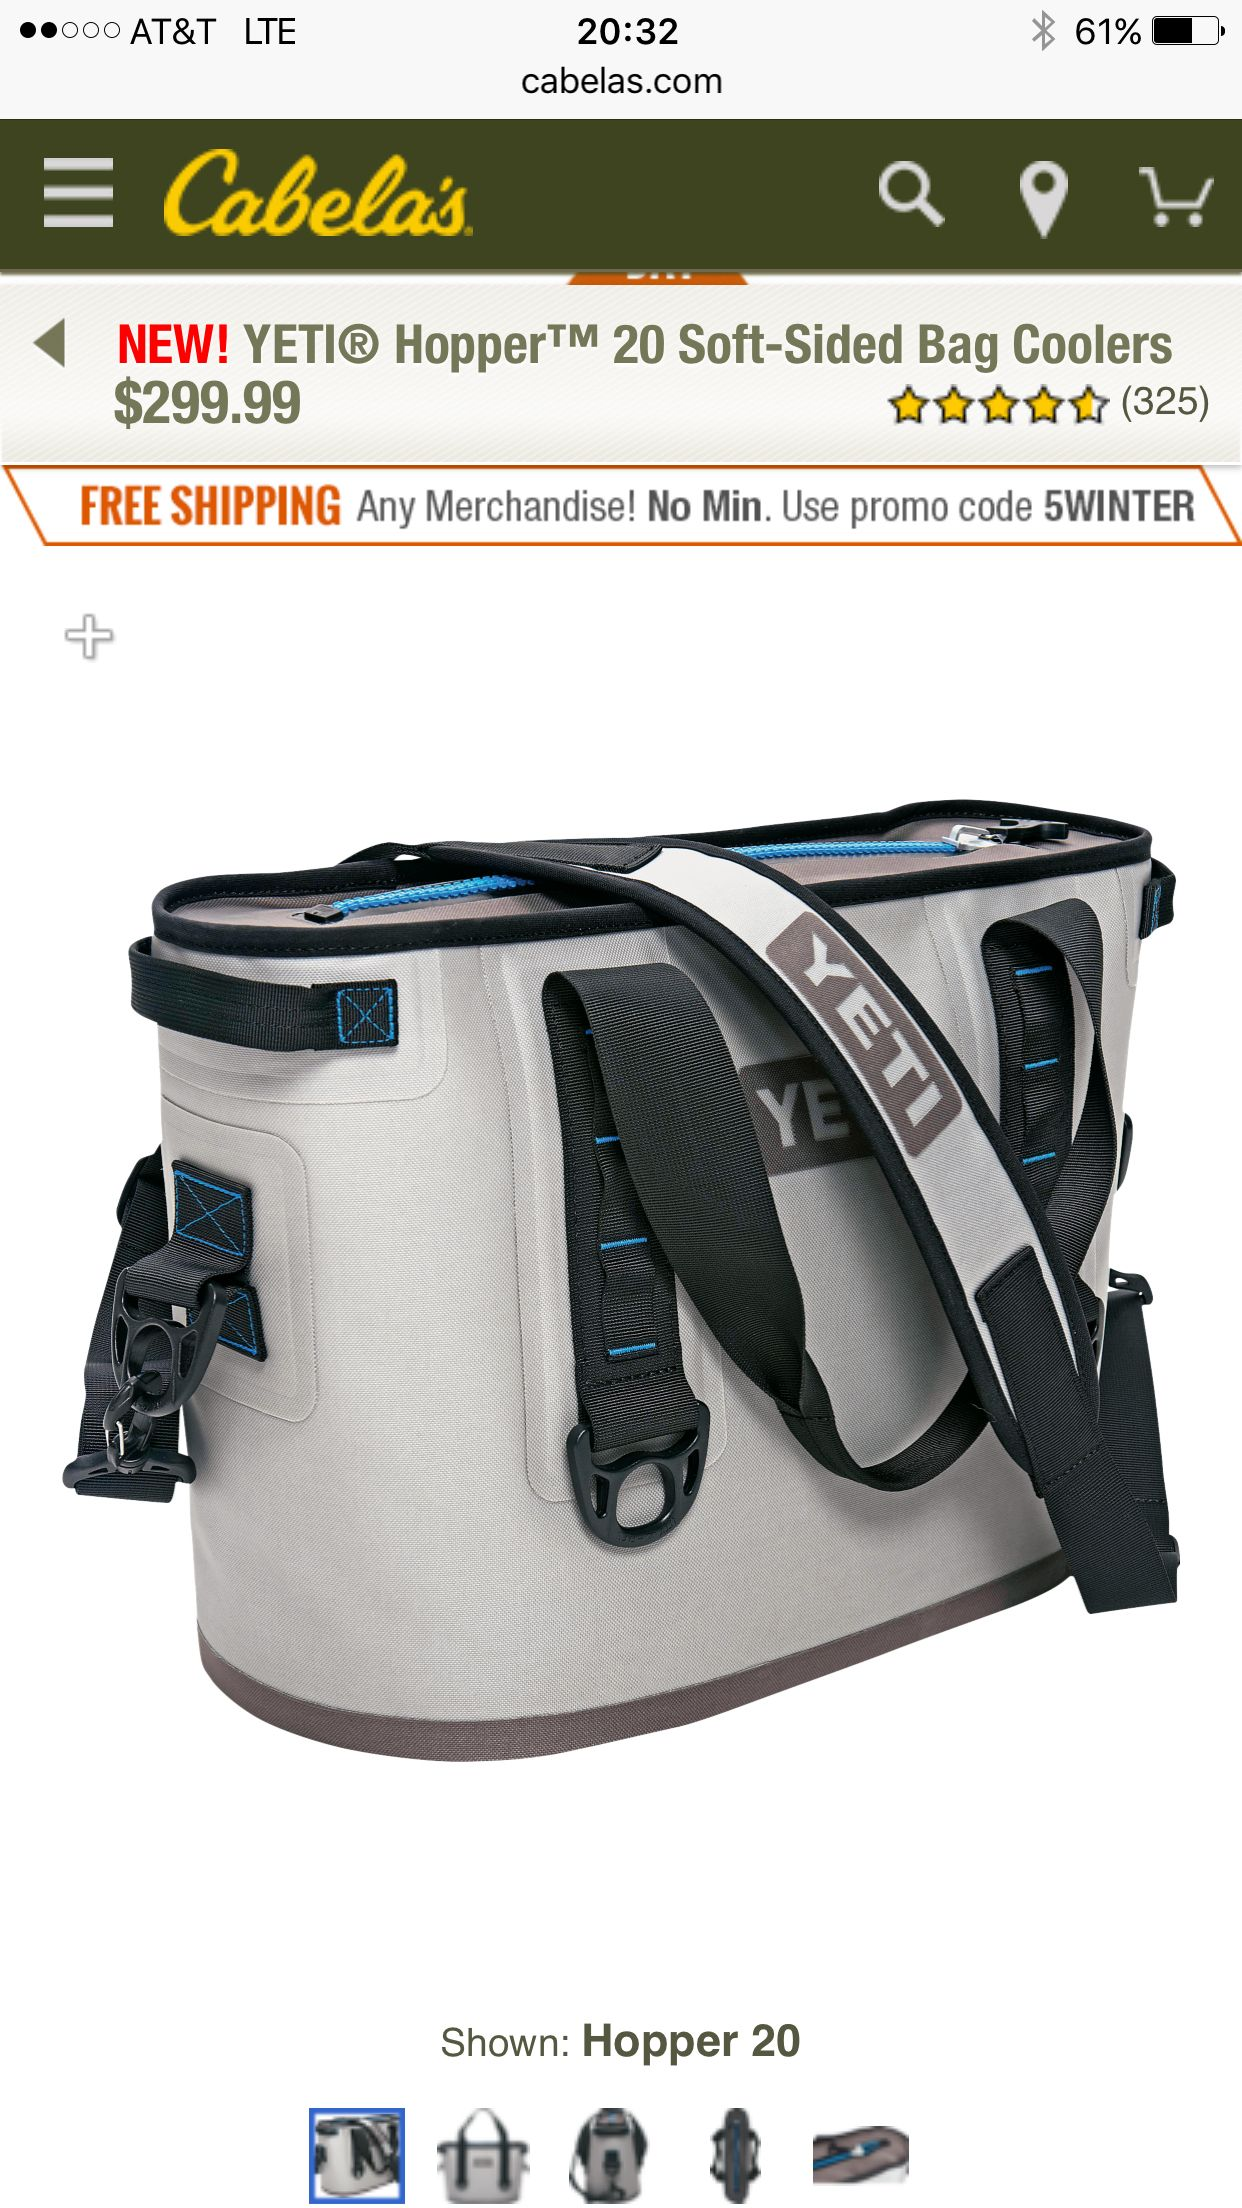 My Wish Would Be A Yeti Hopper Im In My Car Most All Day For Work And This Would Rock Cabelaswishlist Soft Sided Coolers Bbq Accessories Portable Cooler